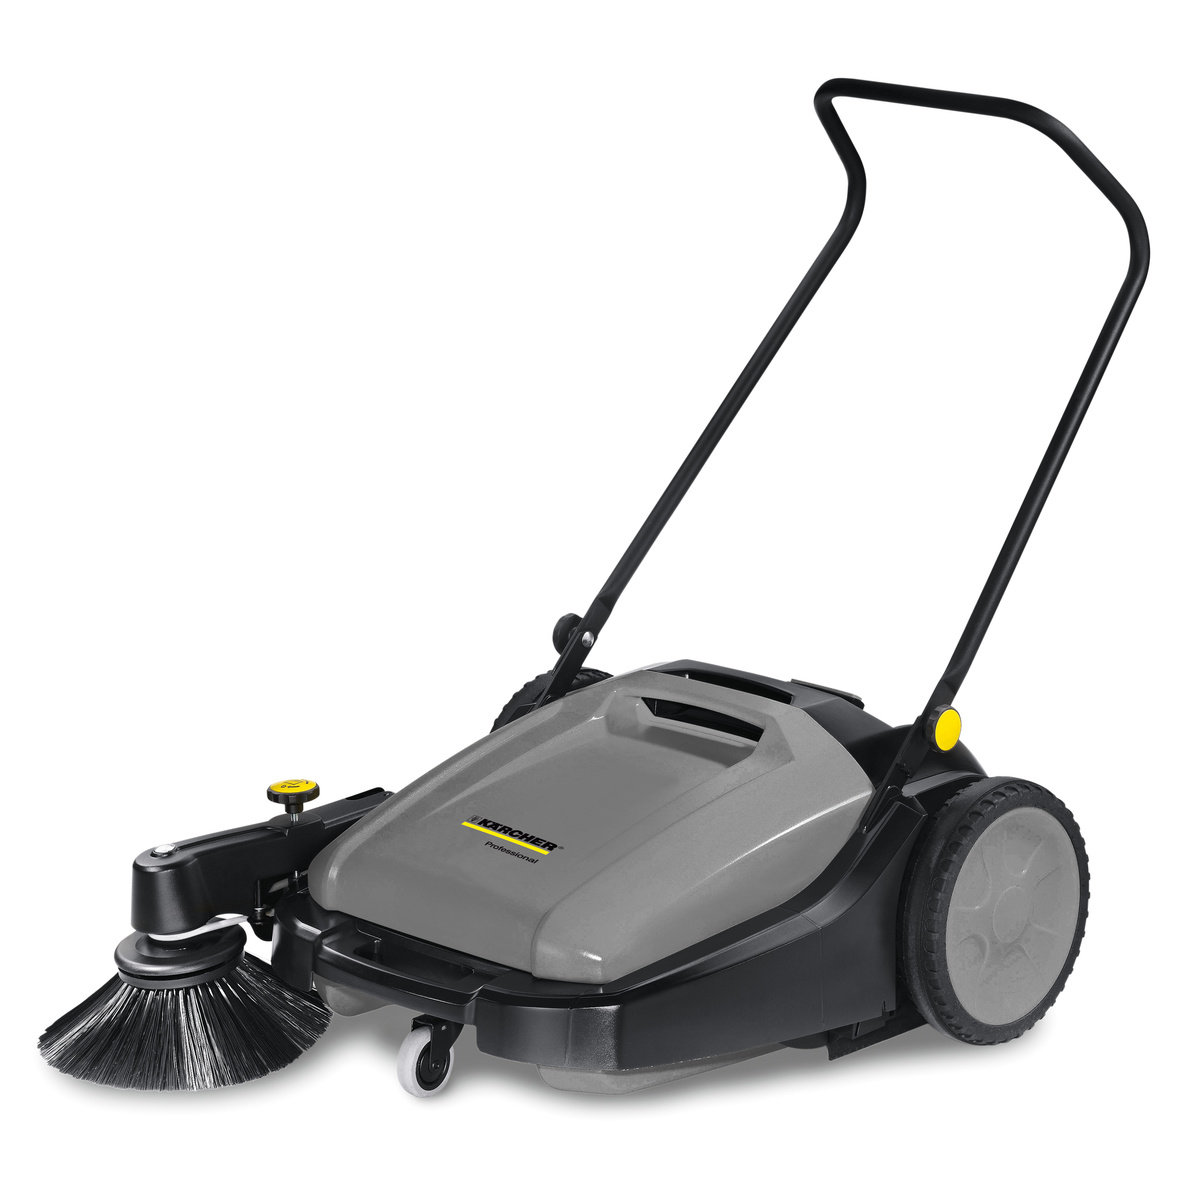 Kärcher KM 70-20 Floor Sweeper Manual 22Kg